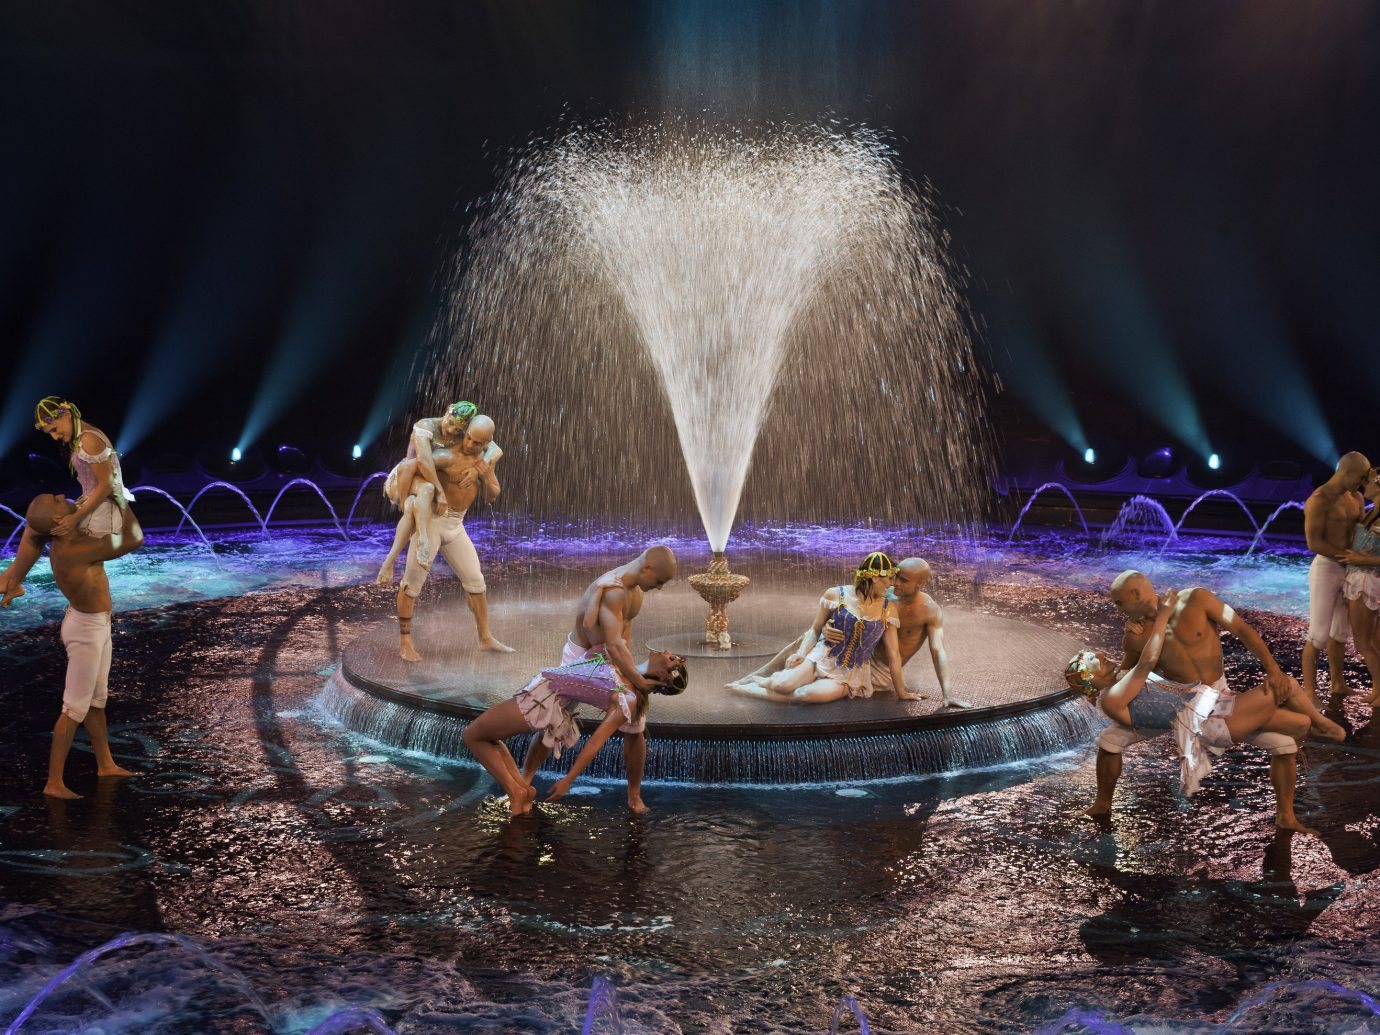 Trip Ideas performance performing arts Entertainment stage musical theatre water feature fountain screenshot mythology several